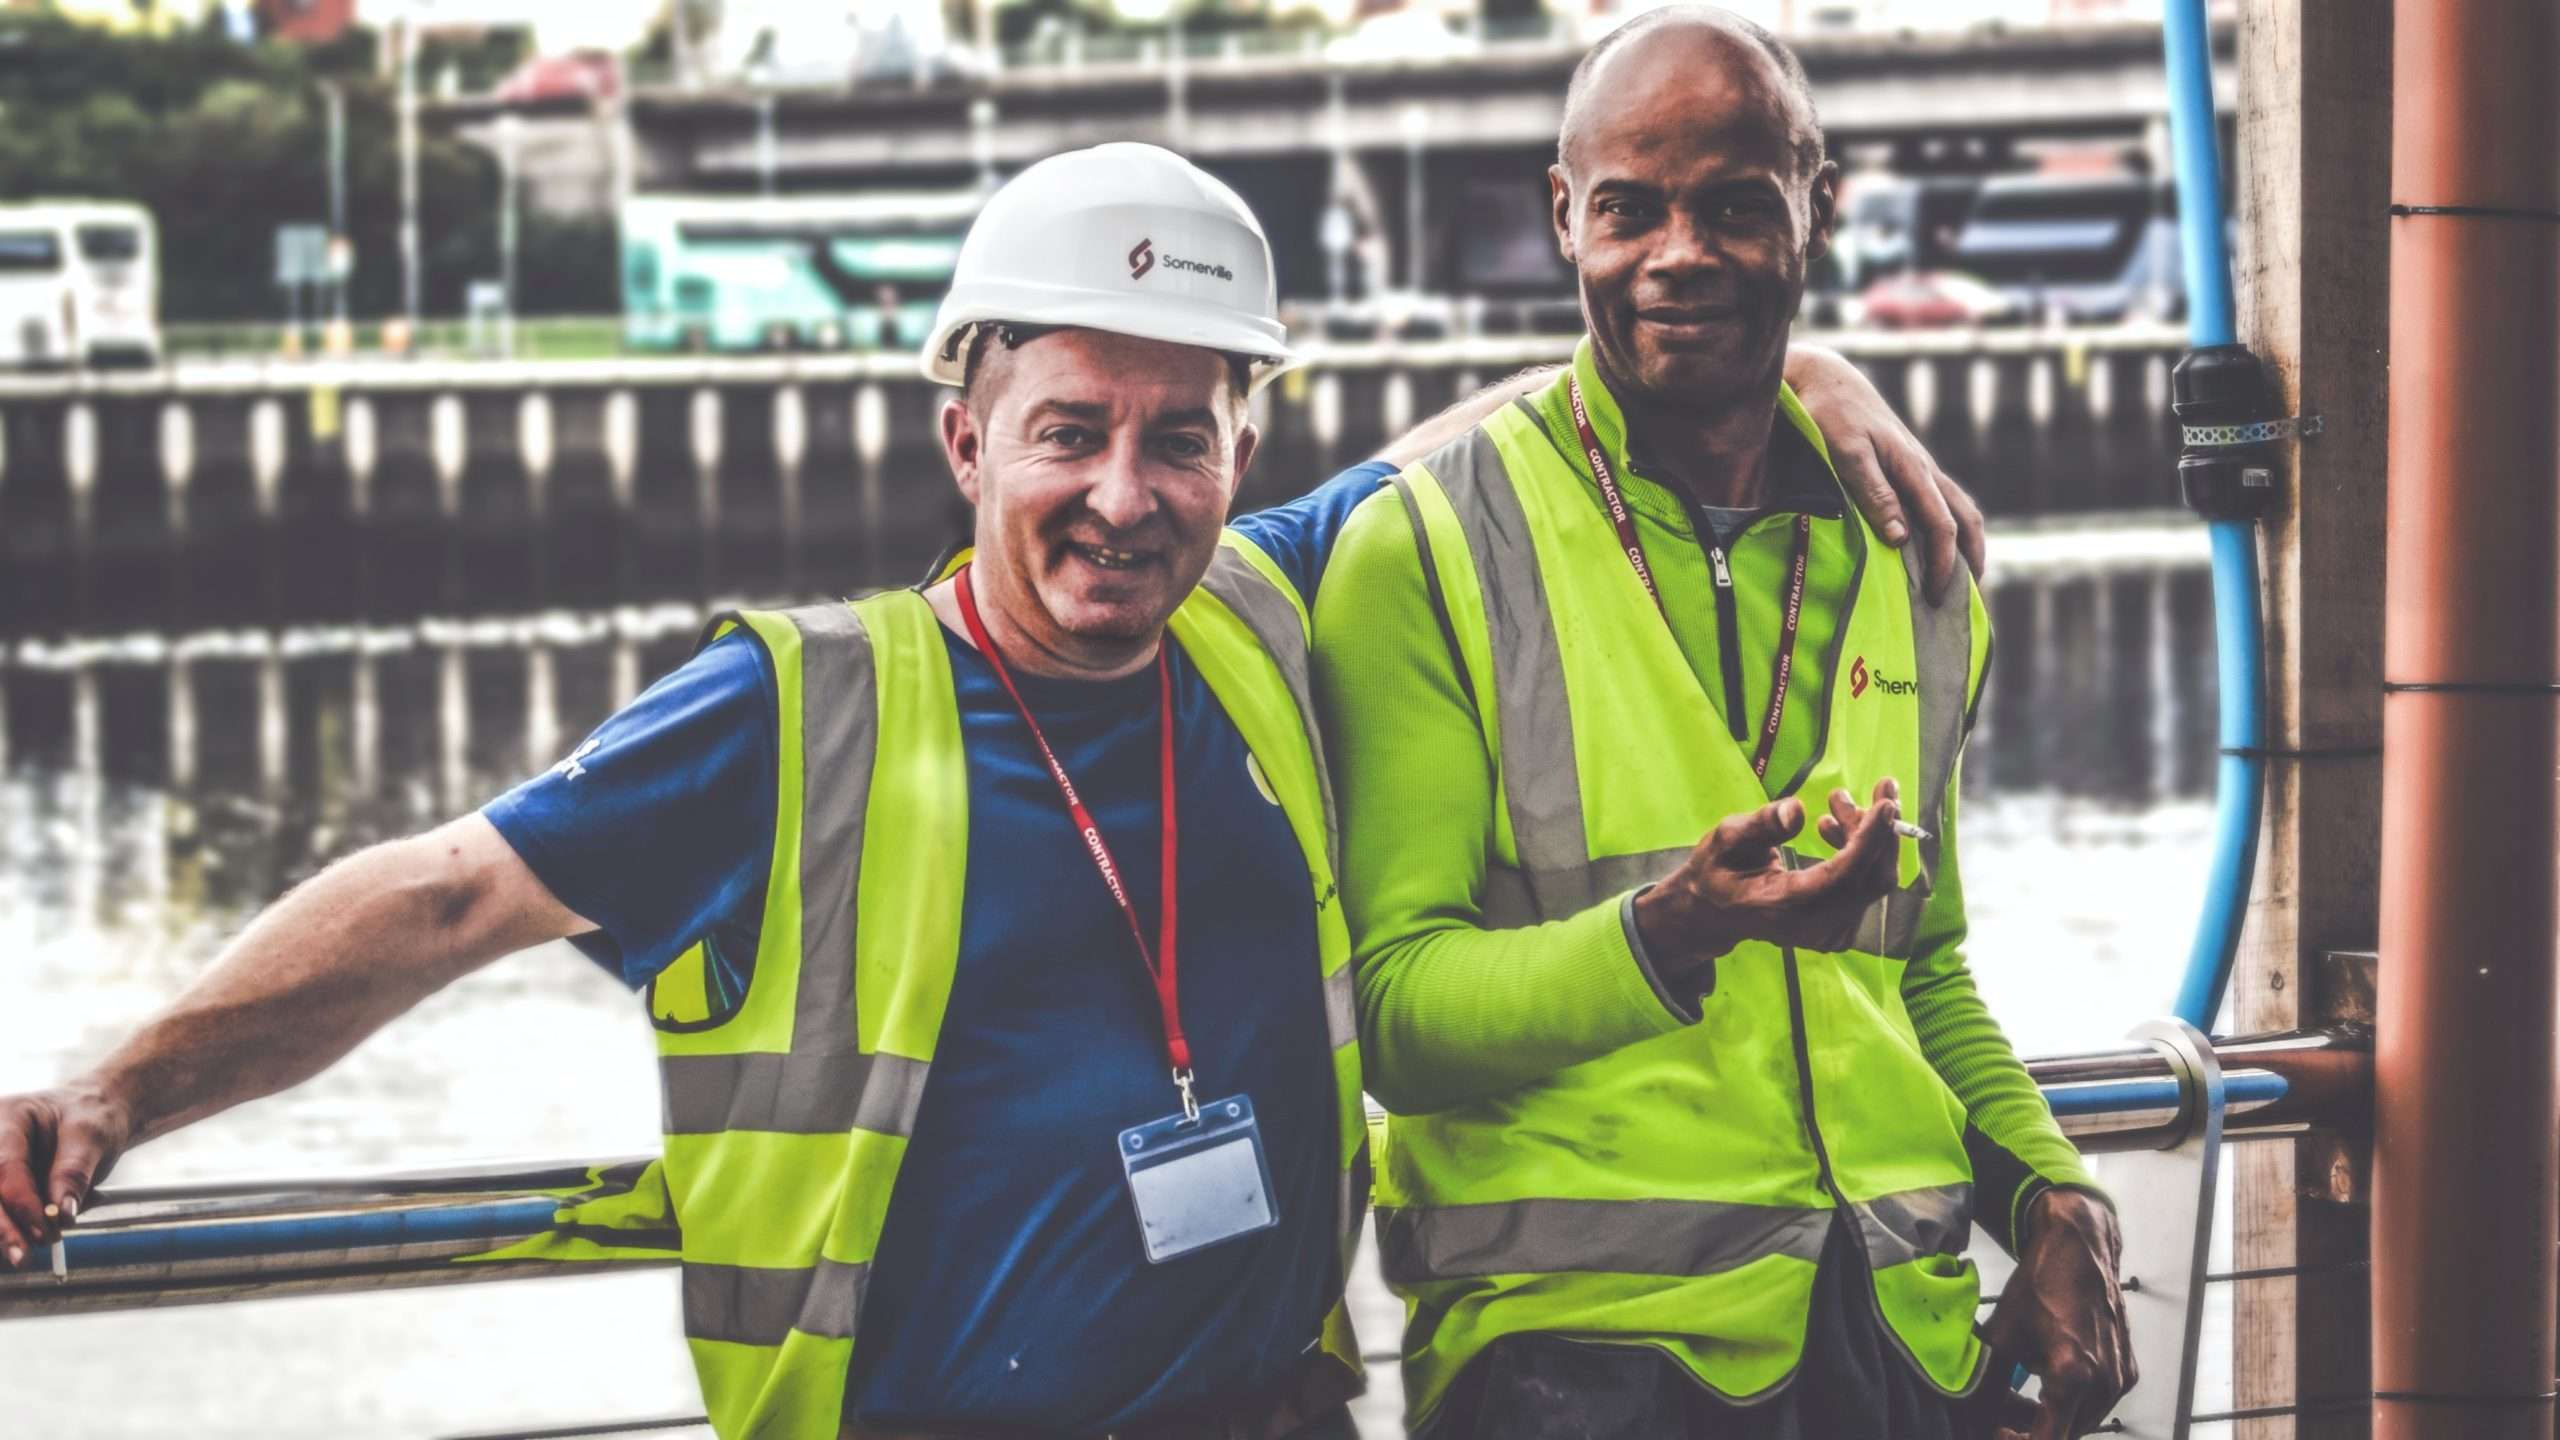 selective focus photography of two men standing side by side wearing green reflective vests